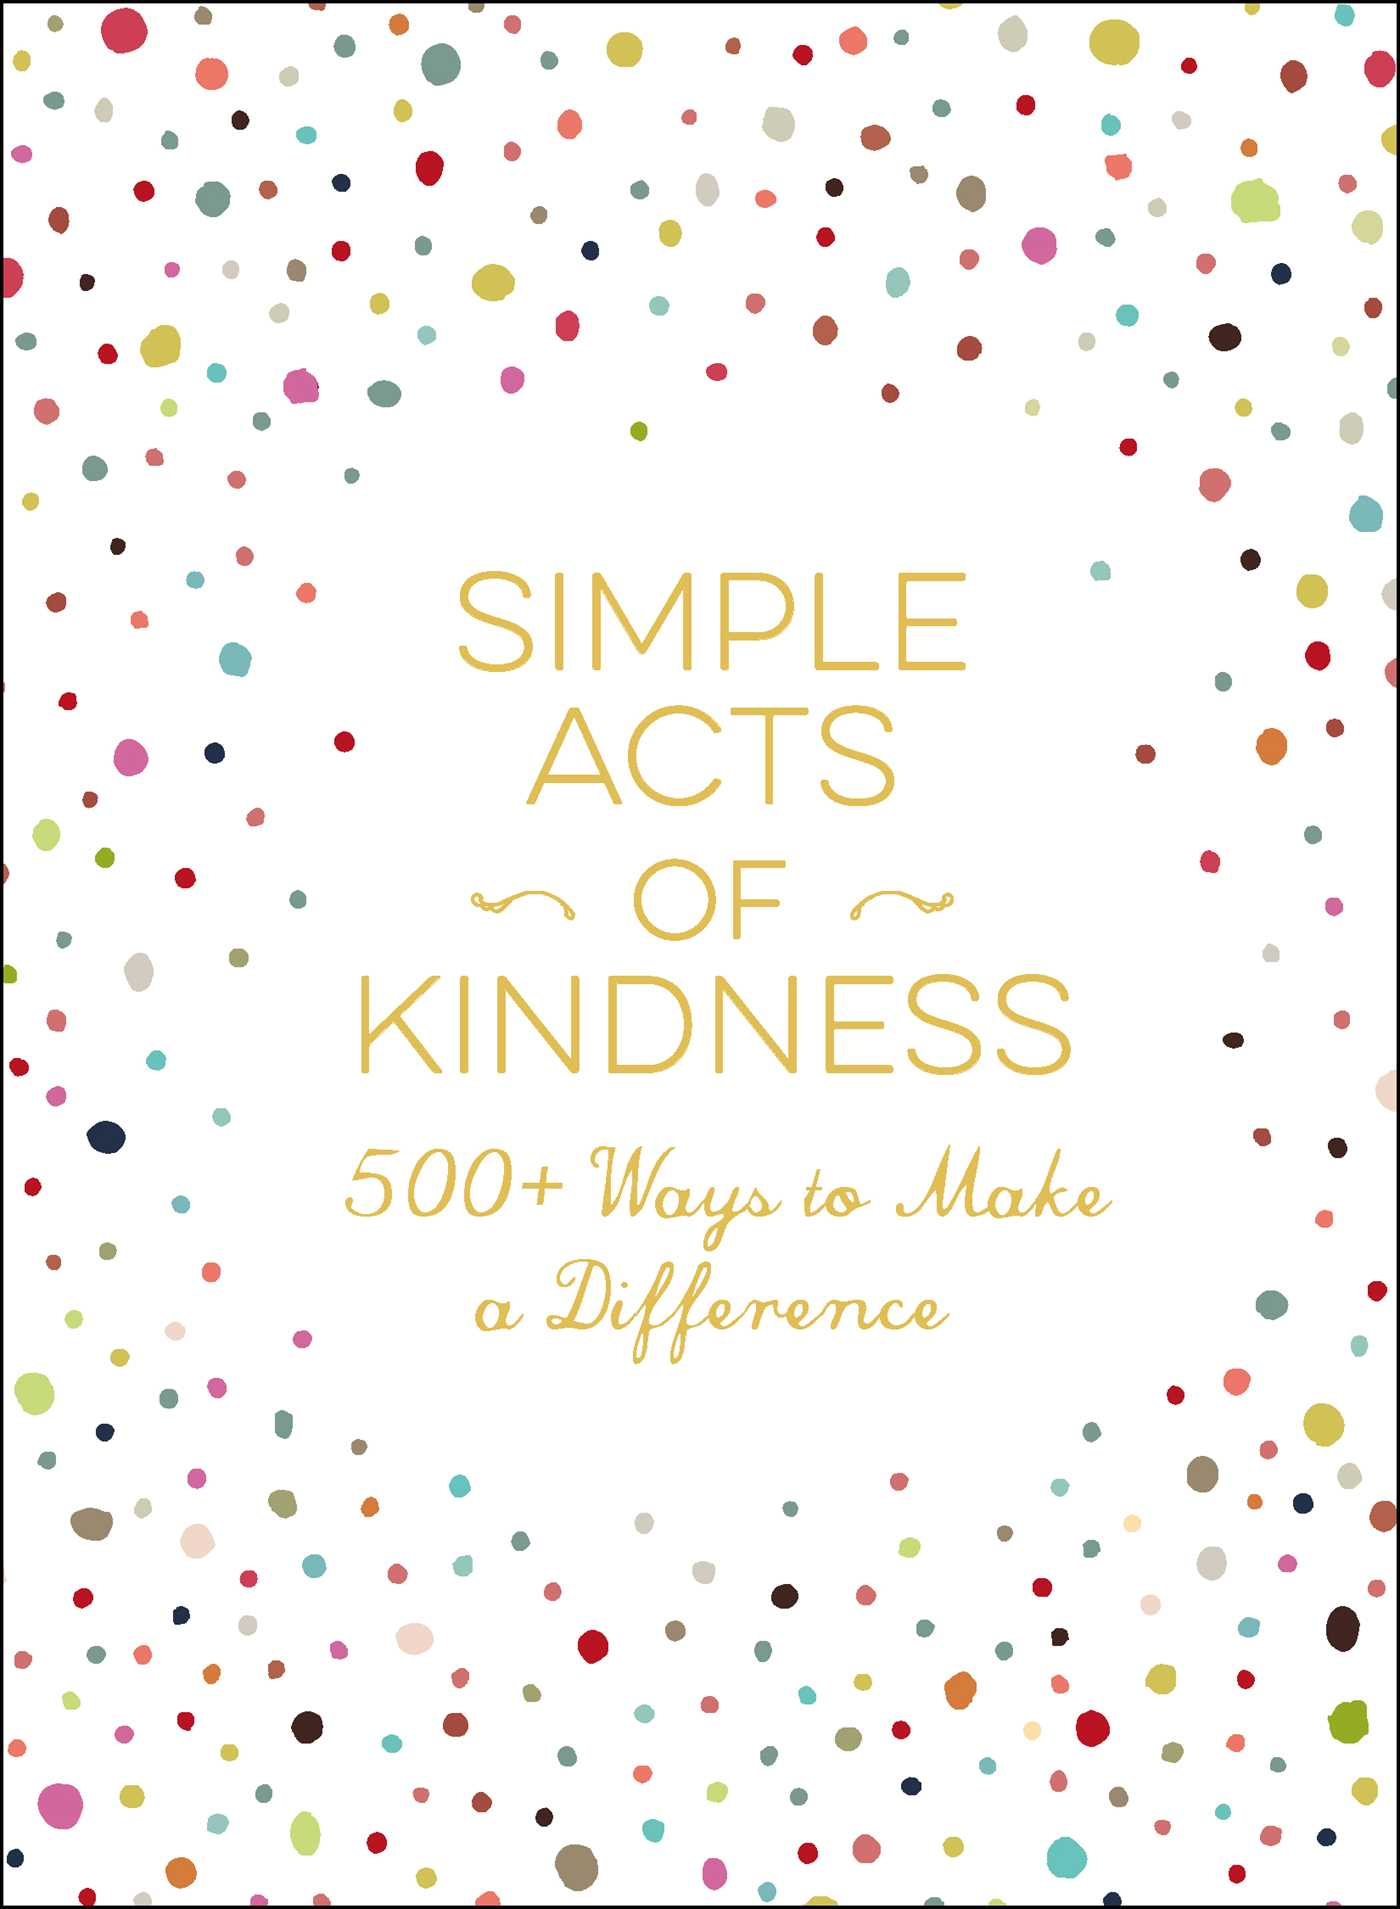 Simple acts of kindness 9781507205679 hr